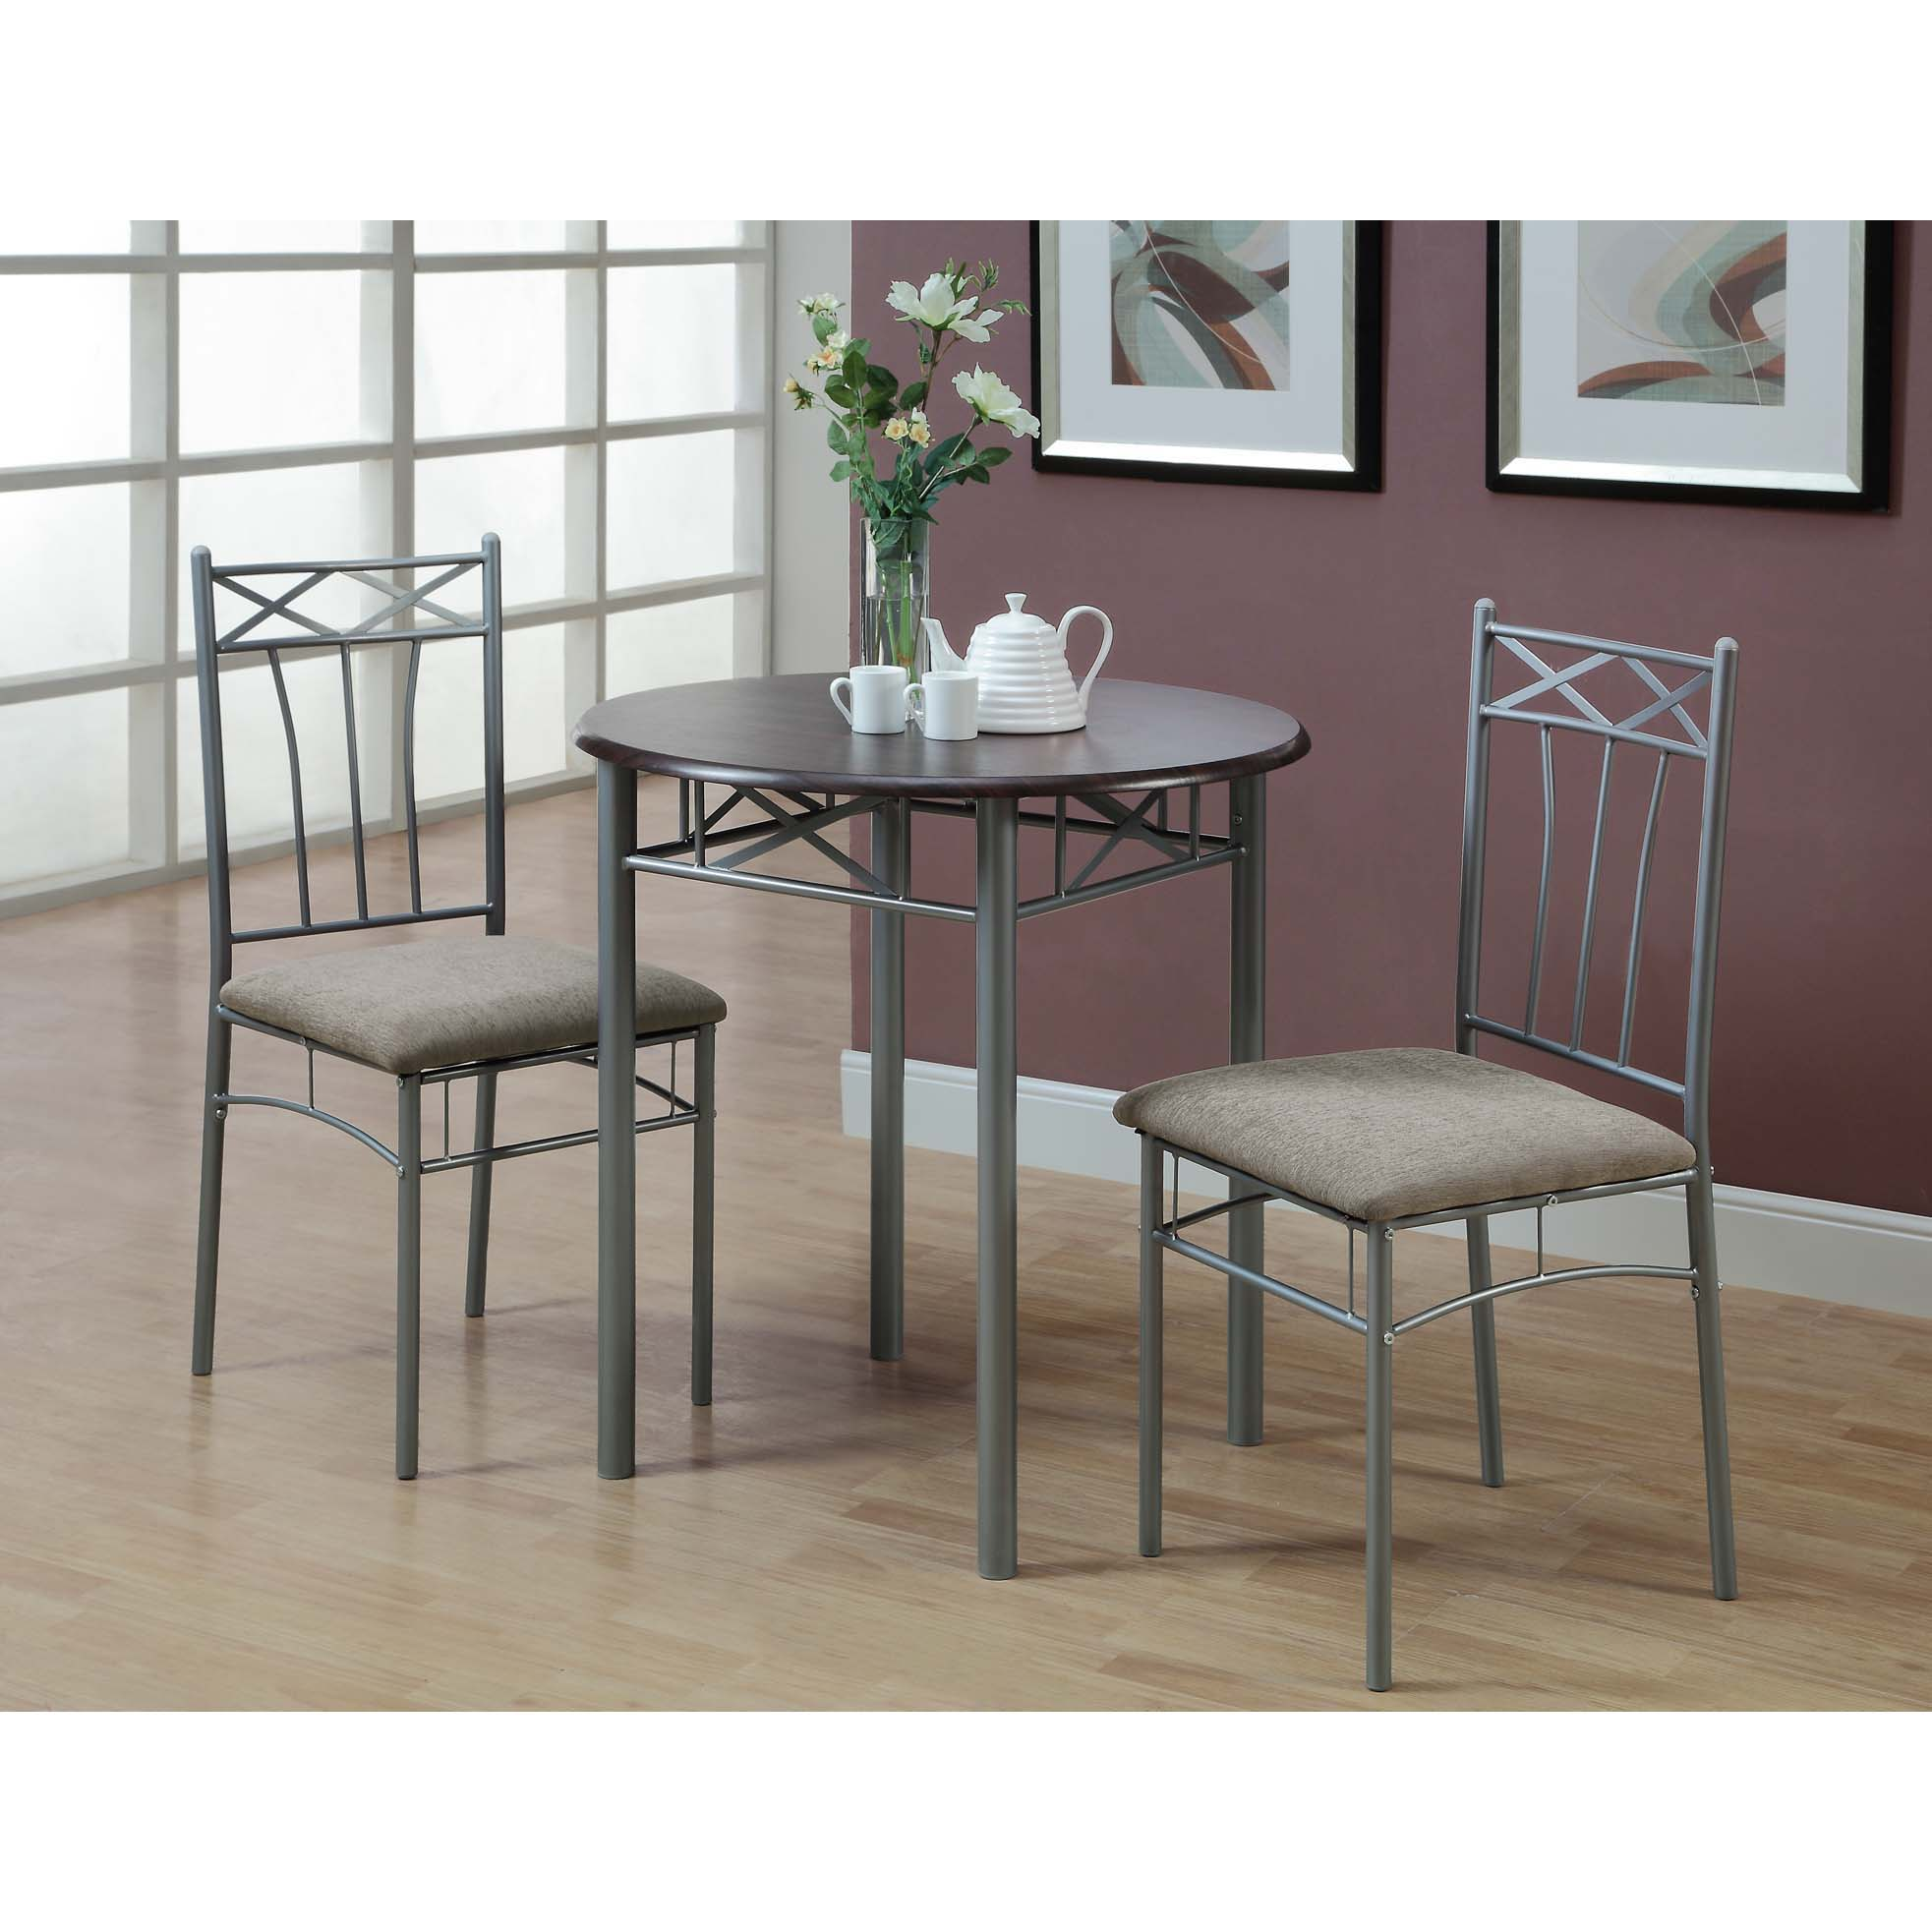 Cuccino Silver Metal 3 Piece Bistro Table Set